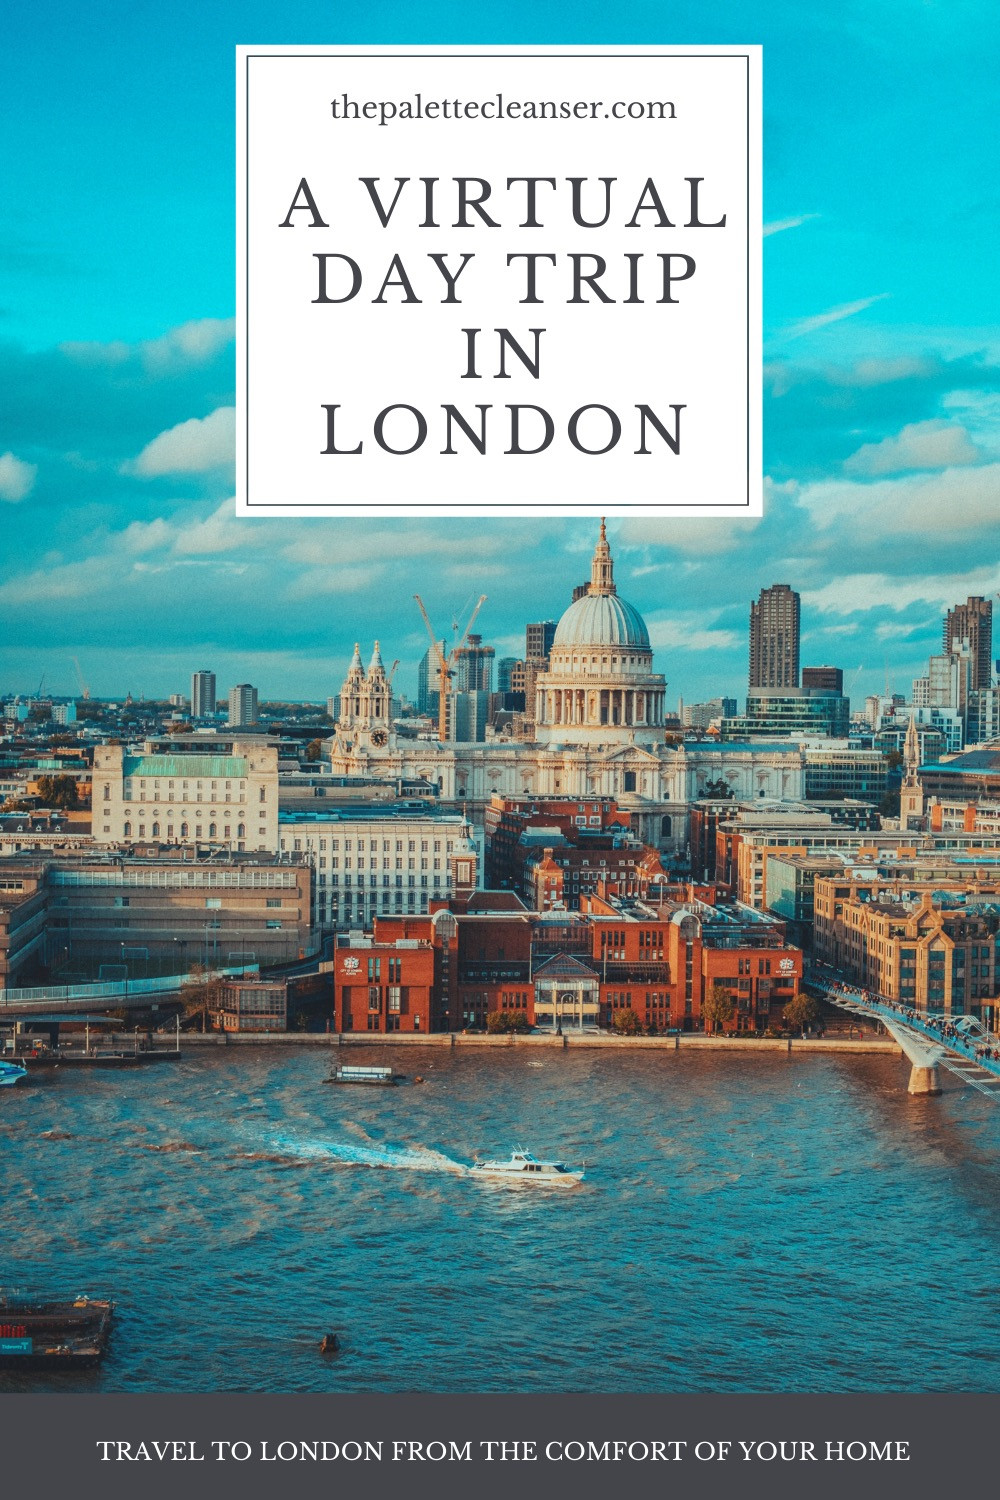 virtual day trip in London